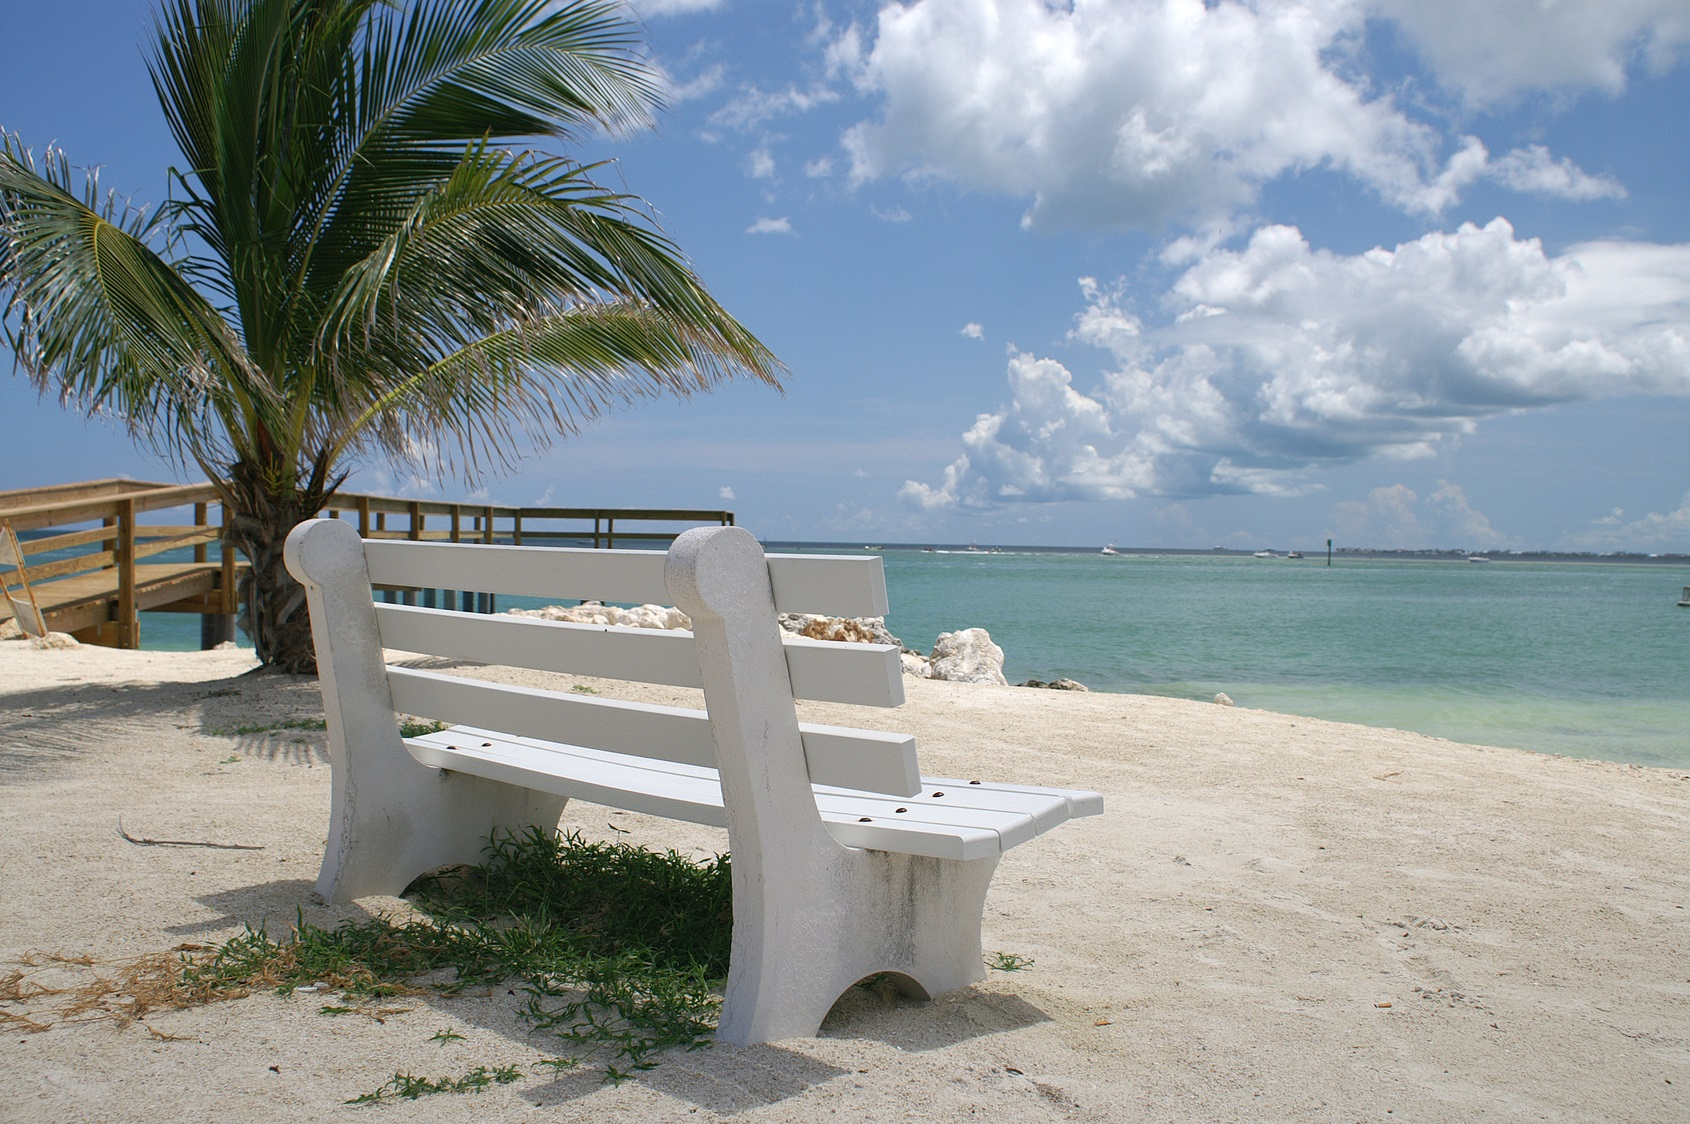 Singer Island Homes and Condos For Sale community image